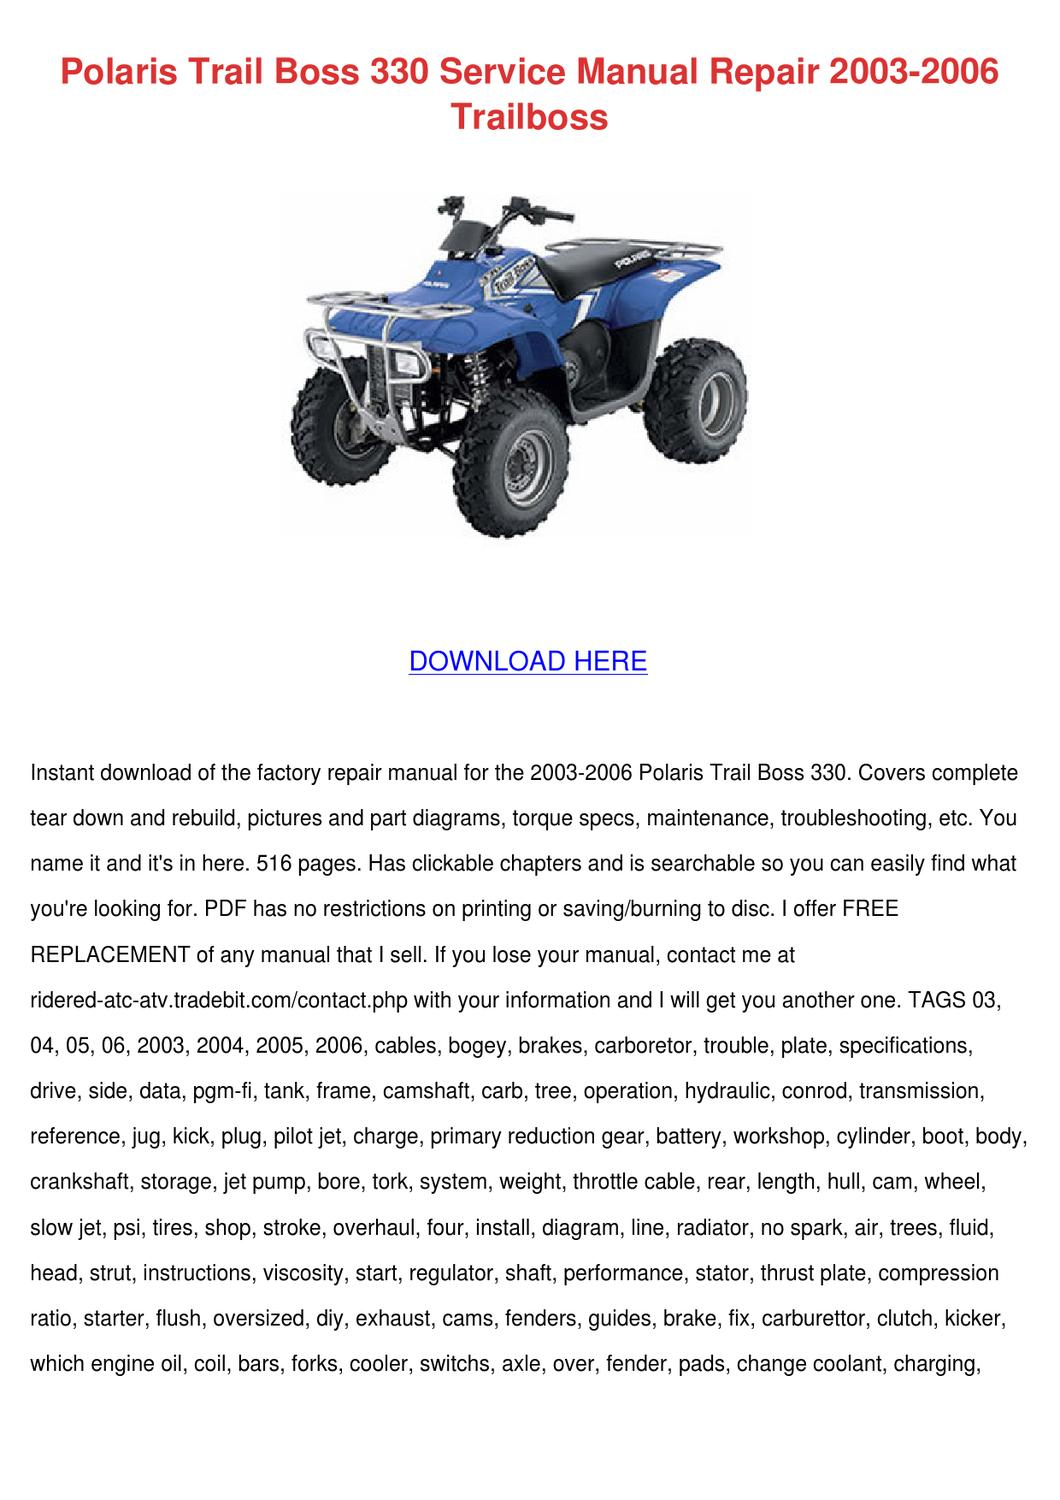 Polaris Trail Boss 330 Service Manual Repair by Wilhelmina Schmitke - issuu